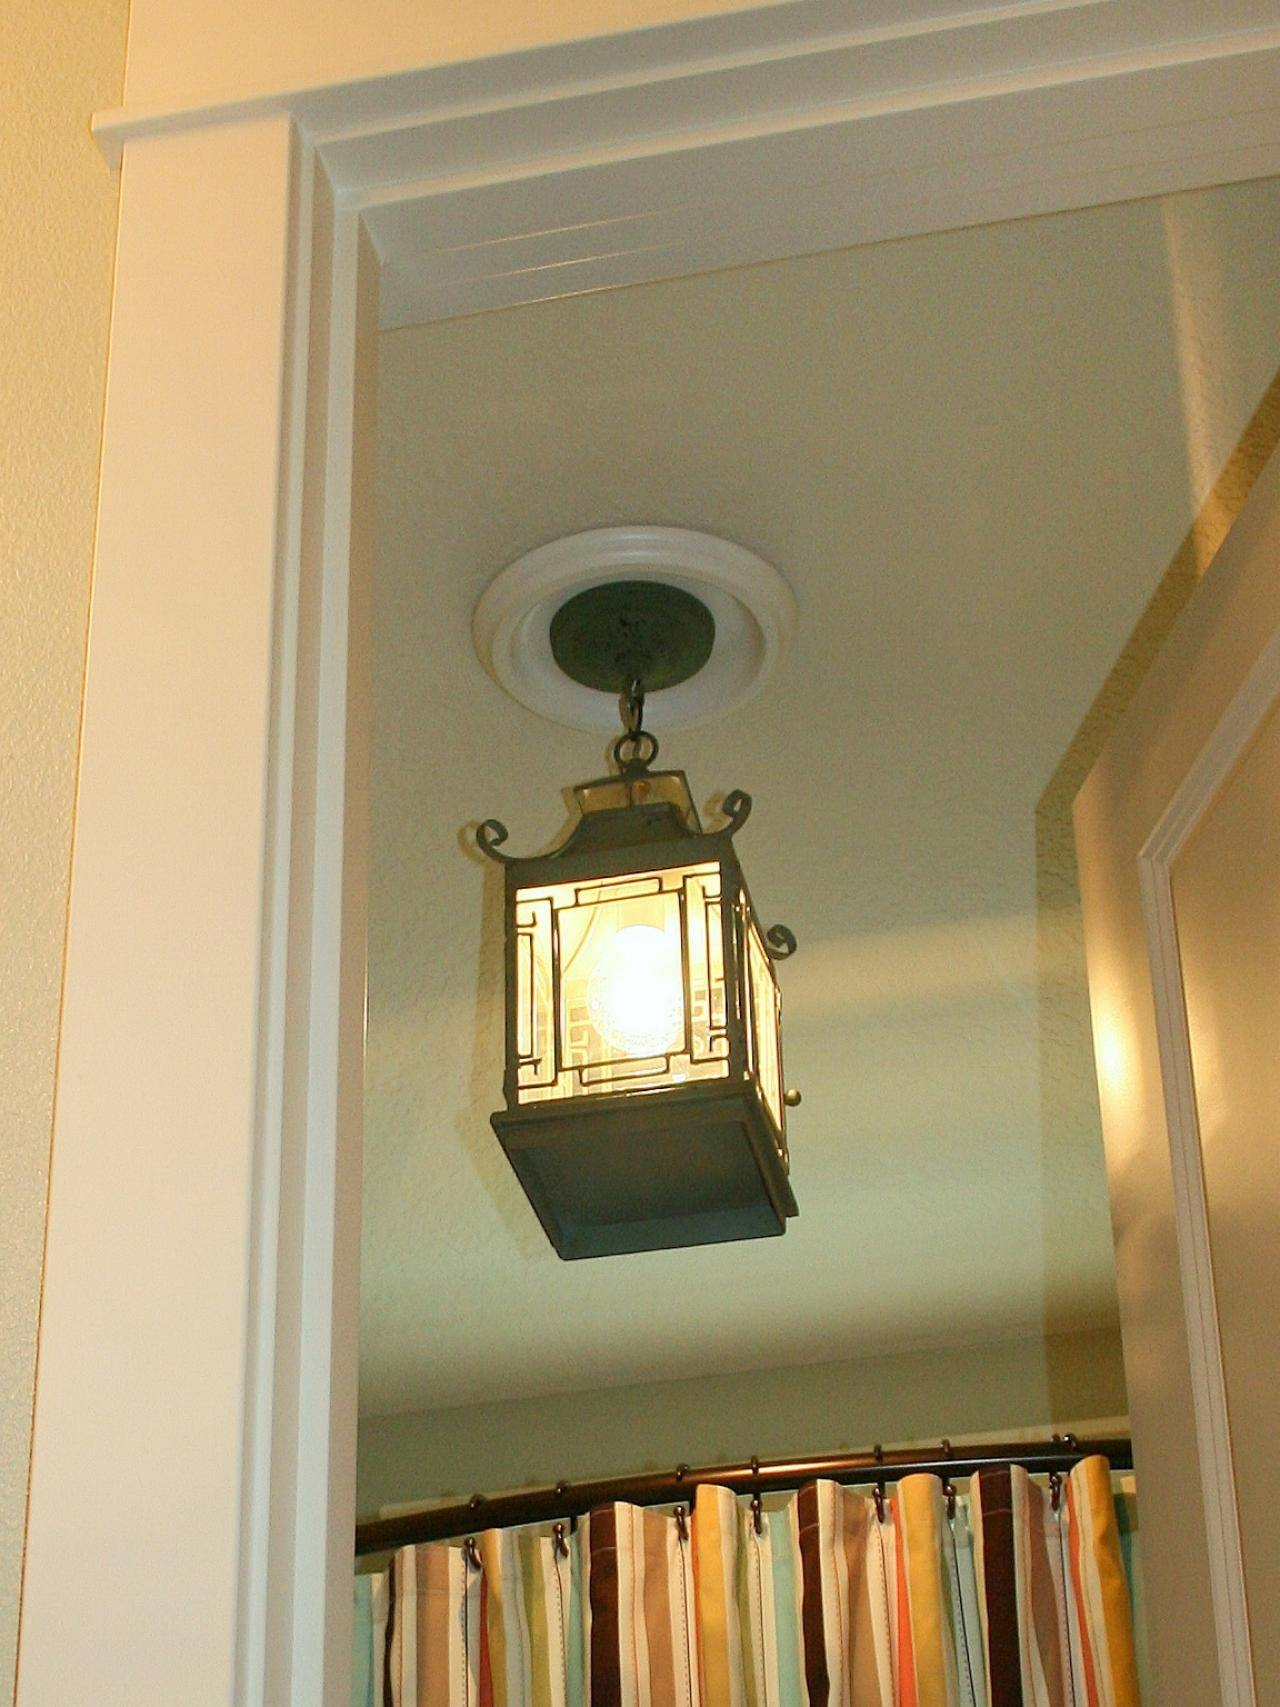 Replace Recessed Light With A Pendant Fixture | Hgtv pertaining to Installing Pendant Lights (Image 14 of 15)